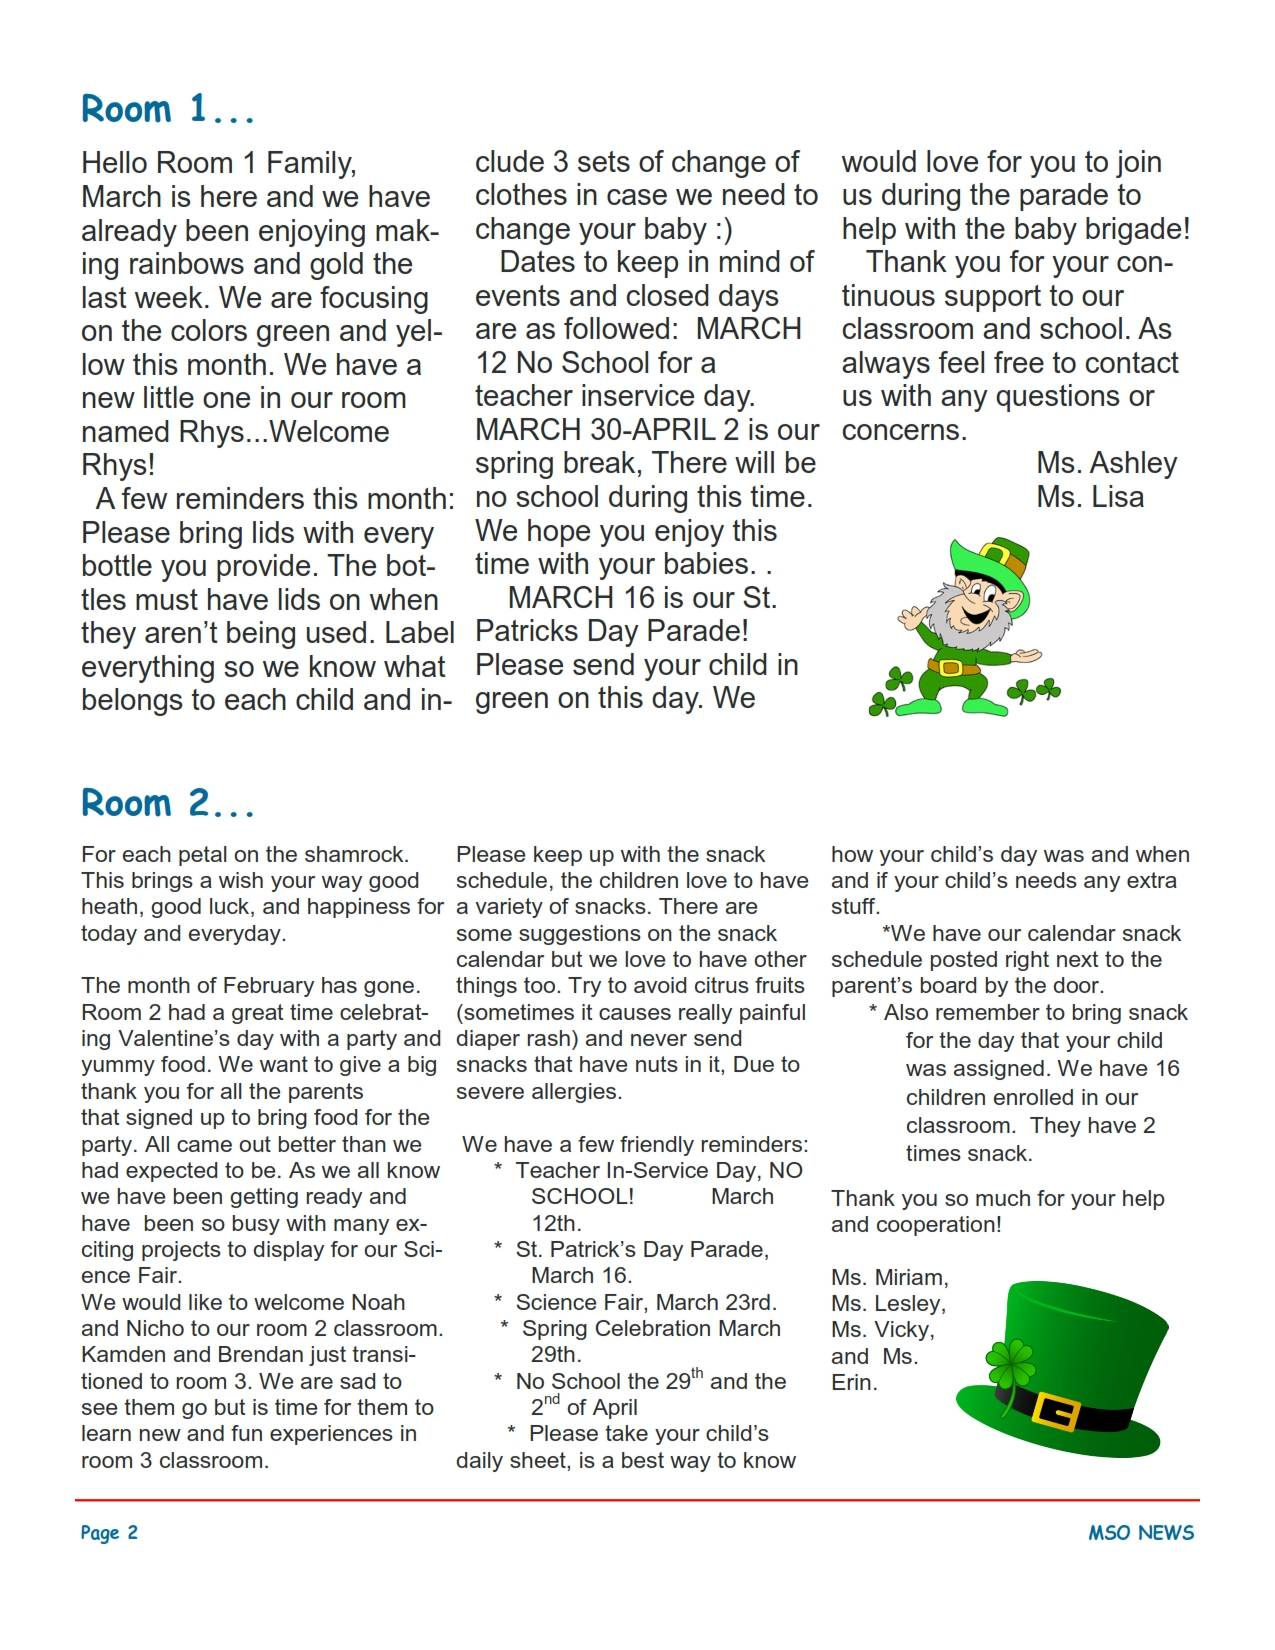 MSO March 2018 Newsletter. Room 1 and Room 2